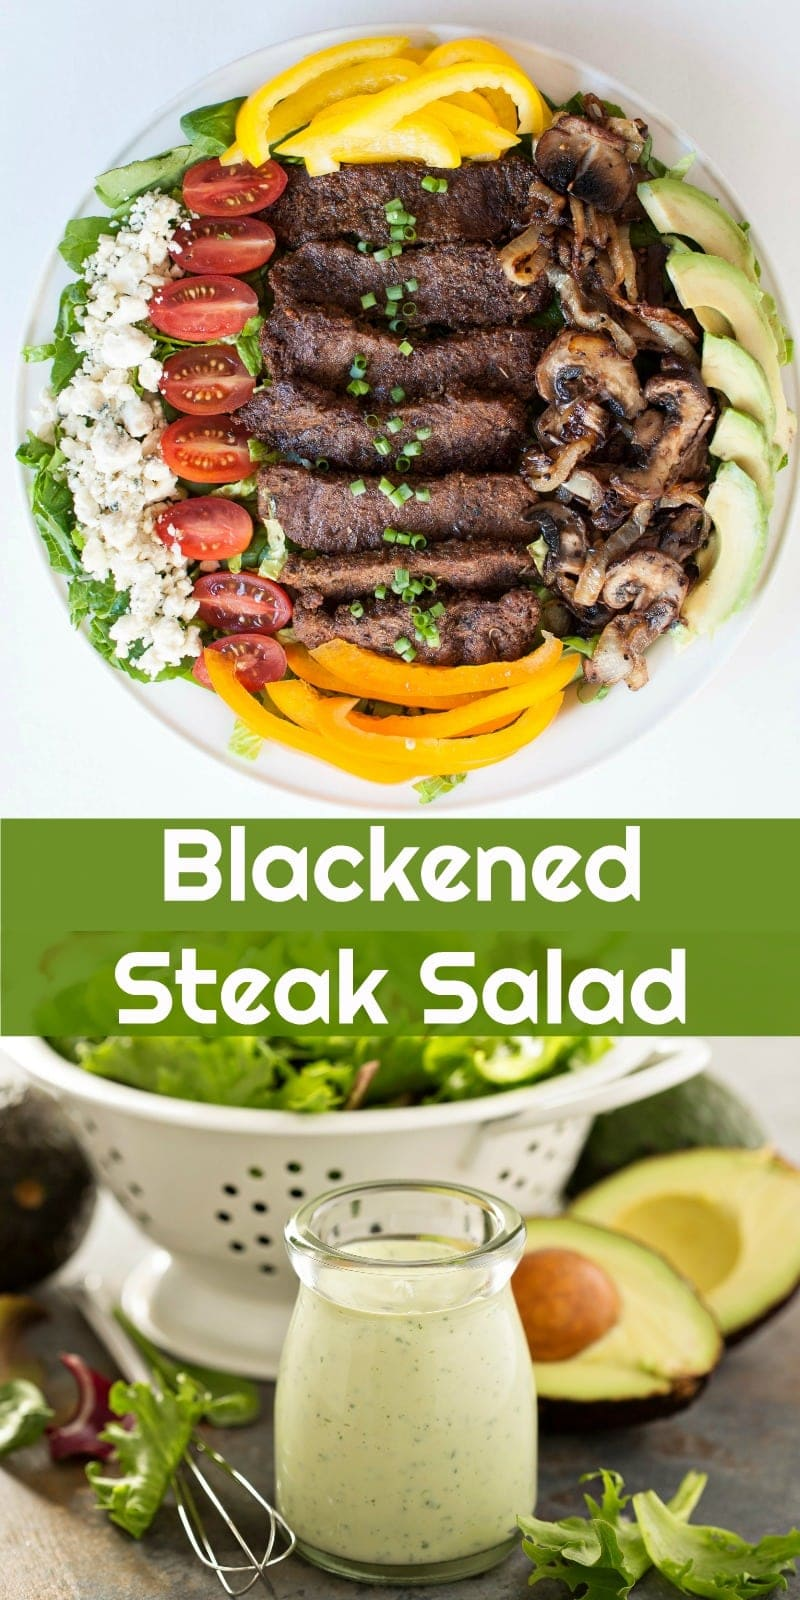 Keto Blackened Steak Salad | Peace Love and Low Carb #keto #lowcarb #ketogenic steaksalad #salad